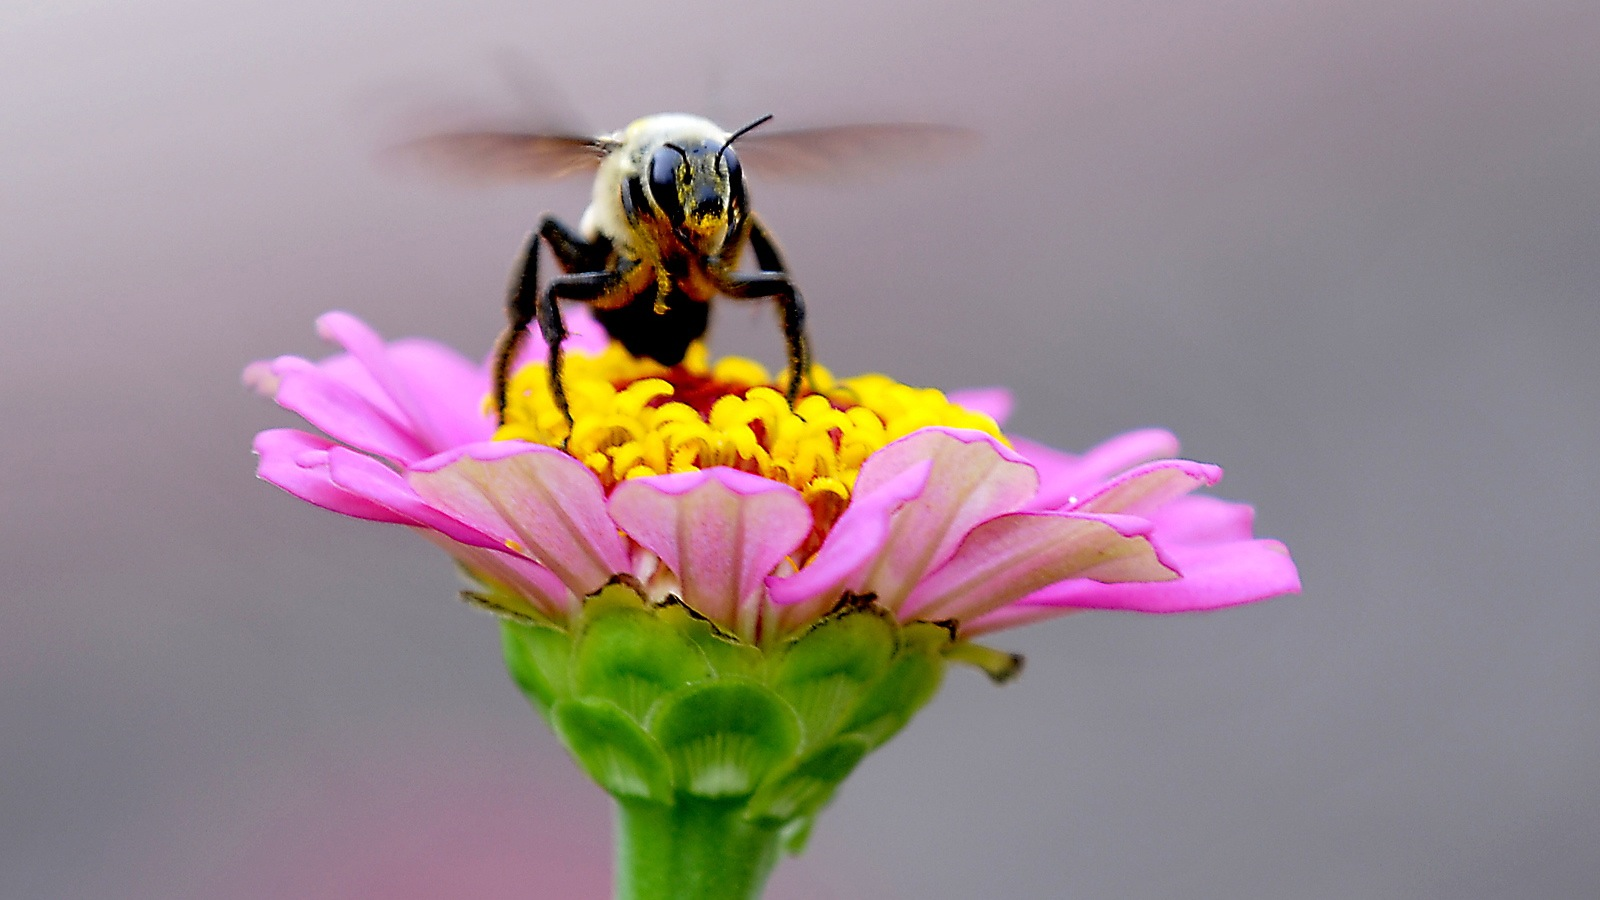 A pollen covered bee takes off from a flower at Dillingham Garden Thursday July 25, 2013 in Enid, Oklahoma. (AP/Enid News & Eagle, Billy Hefton)